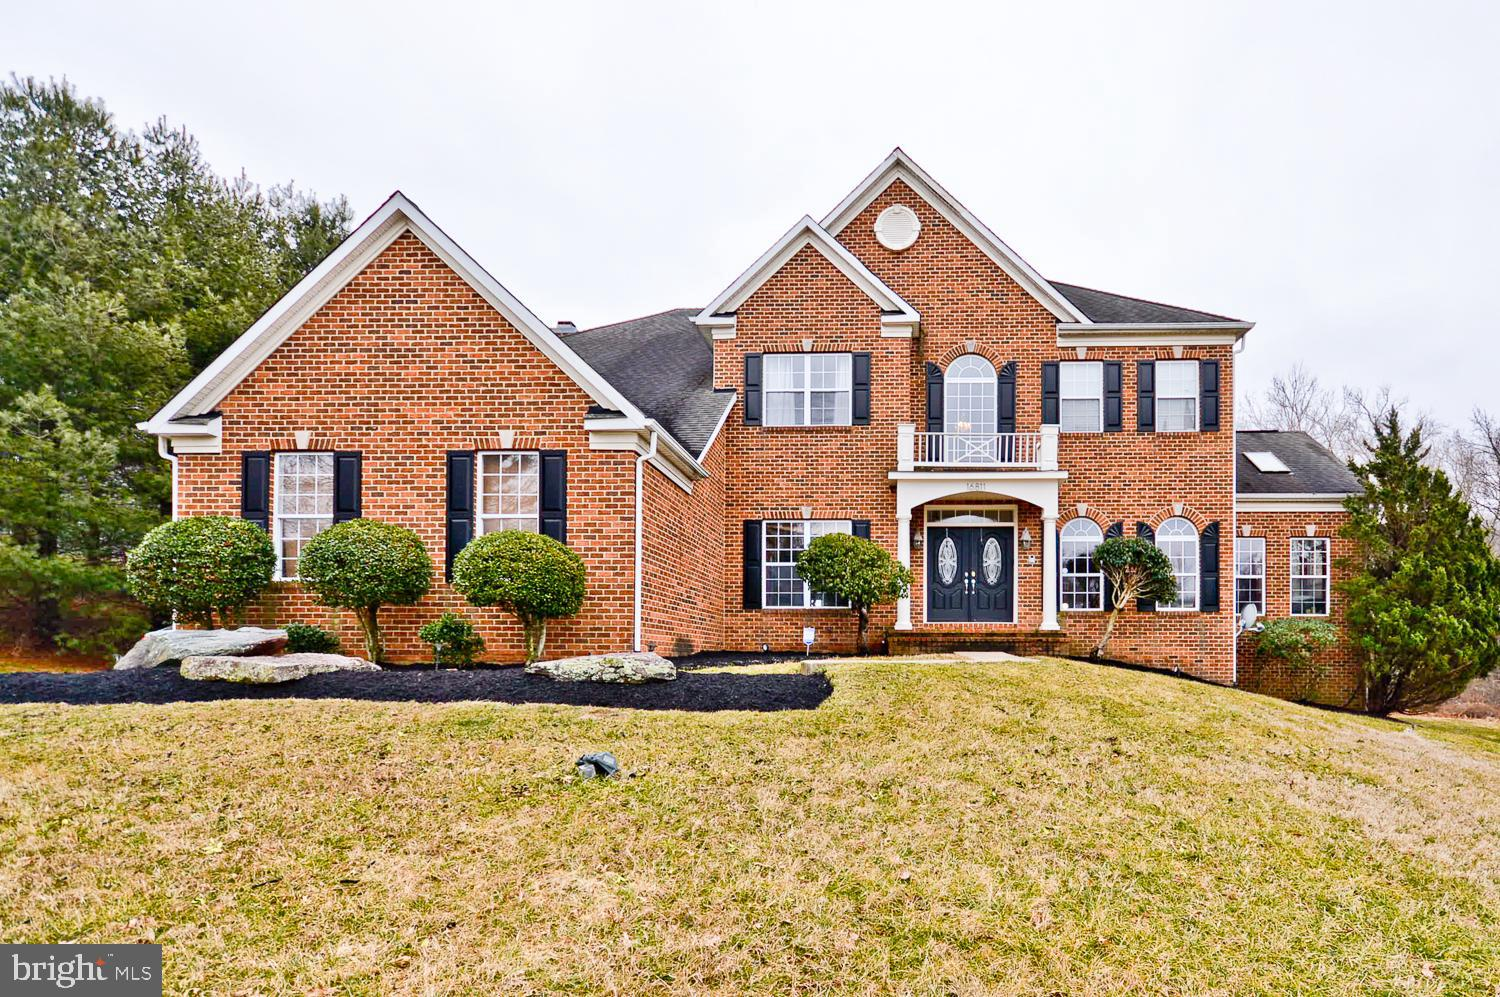 16811 FEDERAL HILL COURT, BOWIE, MD 20716